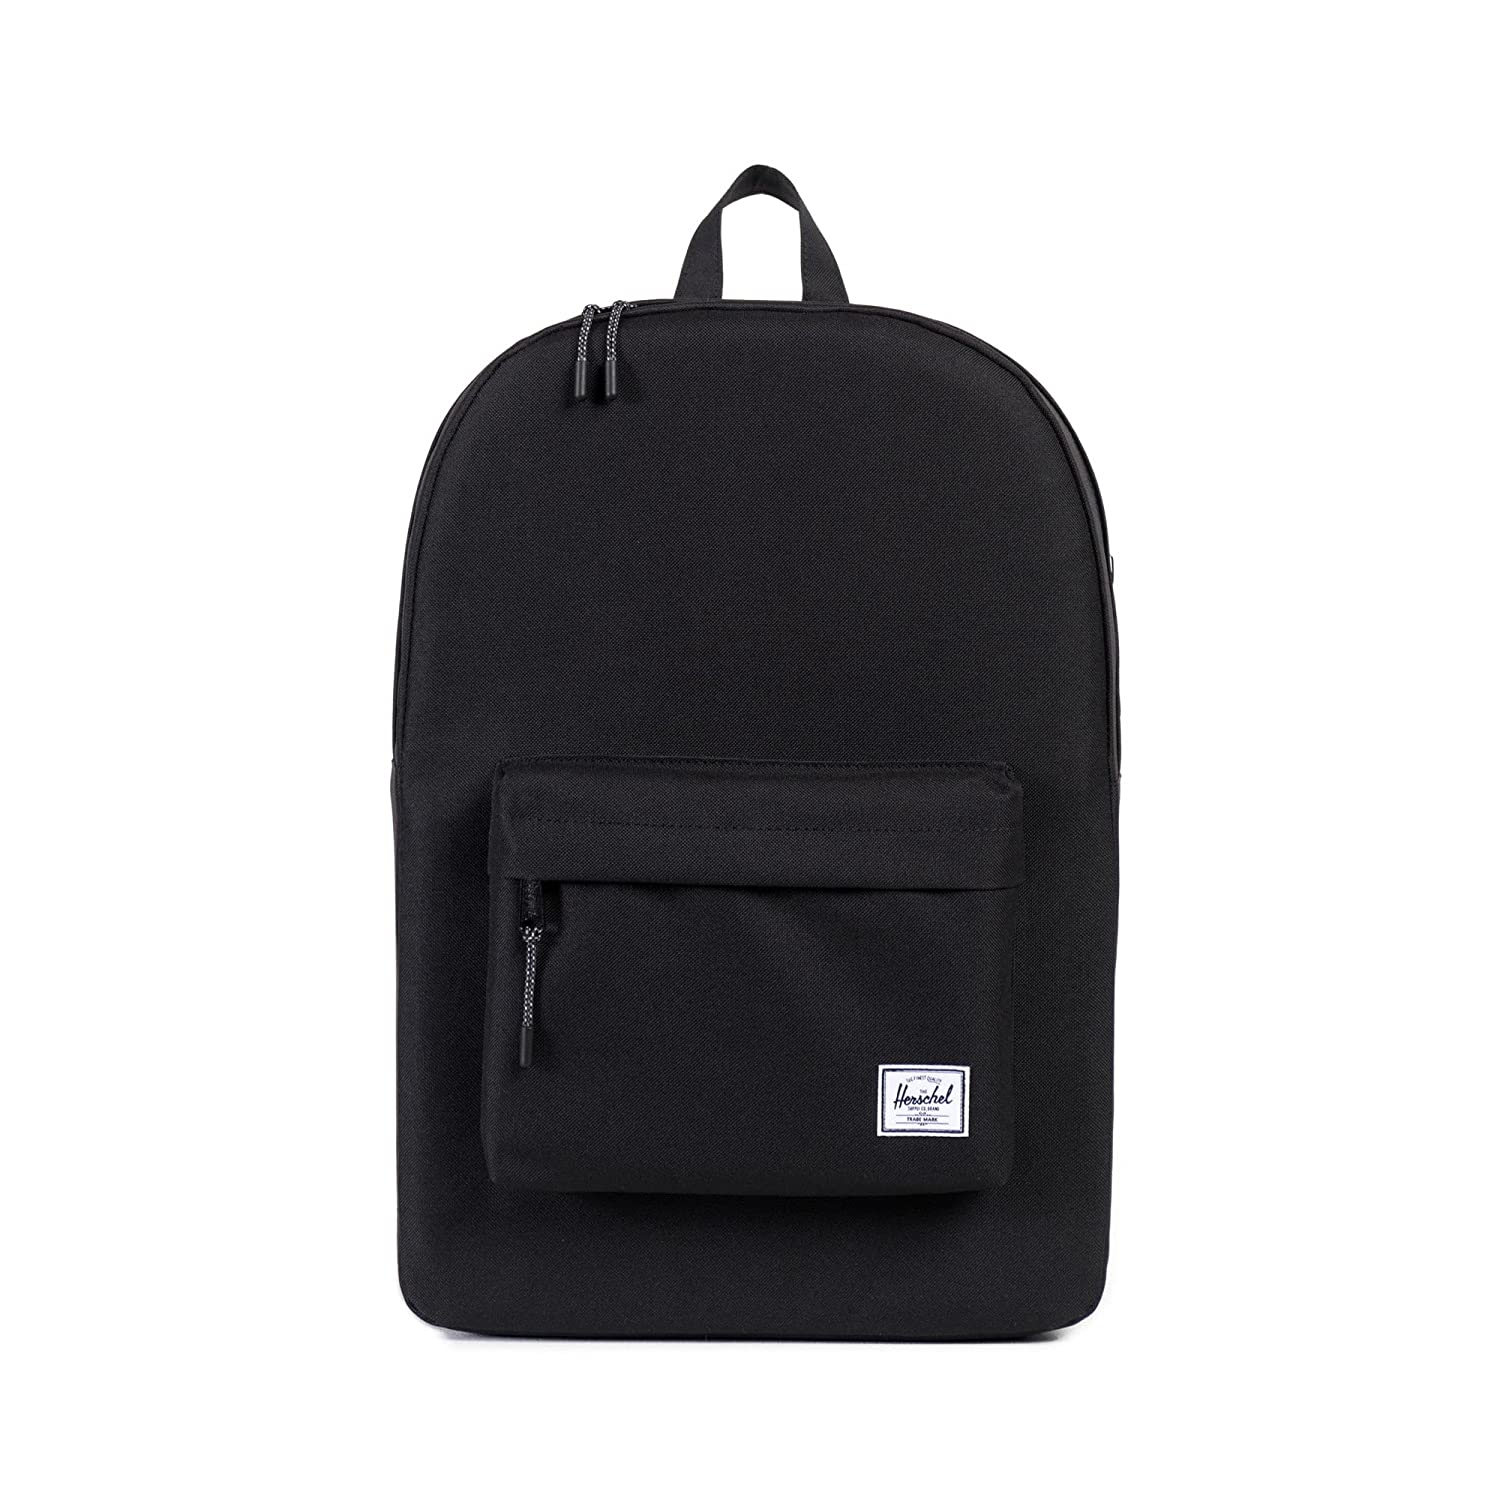 Herschel Supply Co. Classic Backpack, Black, One Size 10001-00001-OS